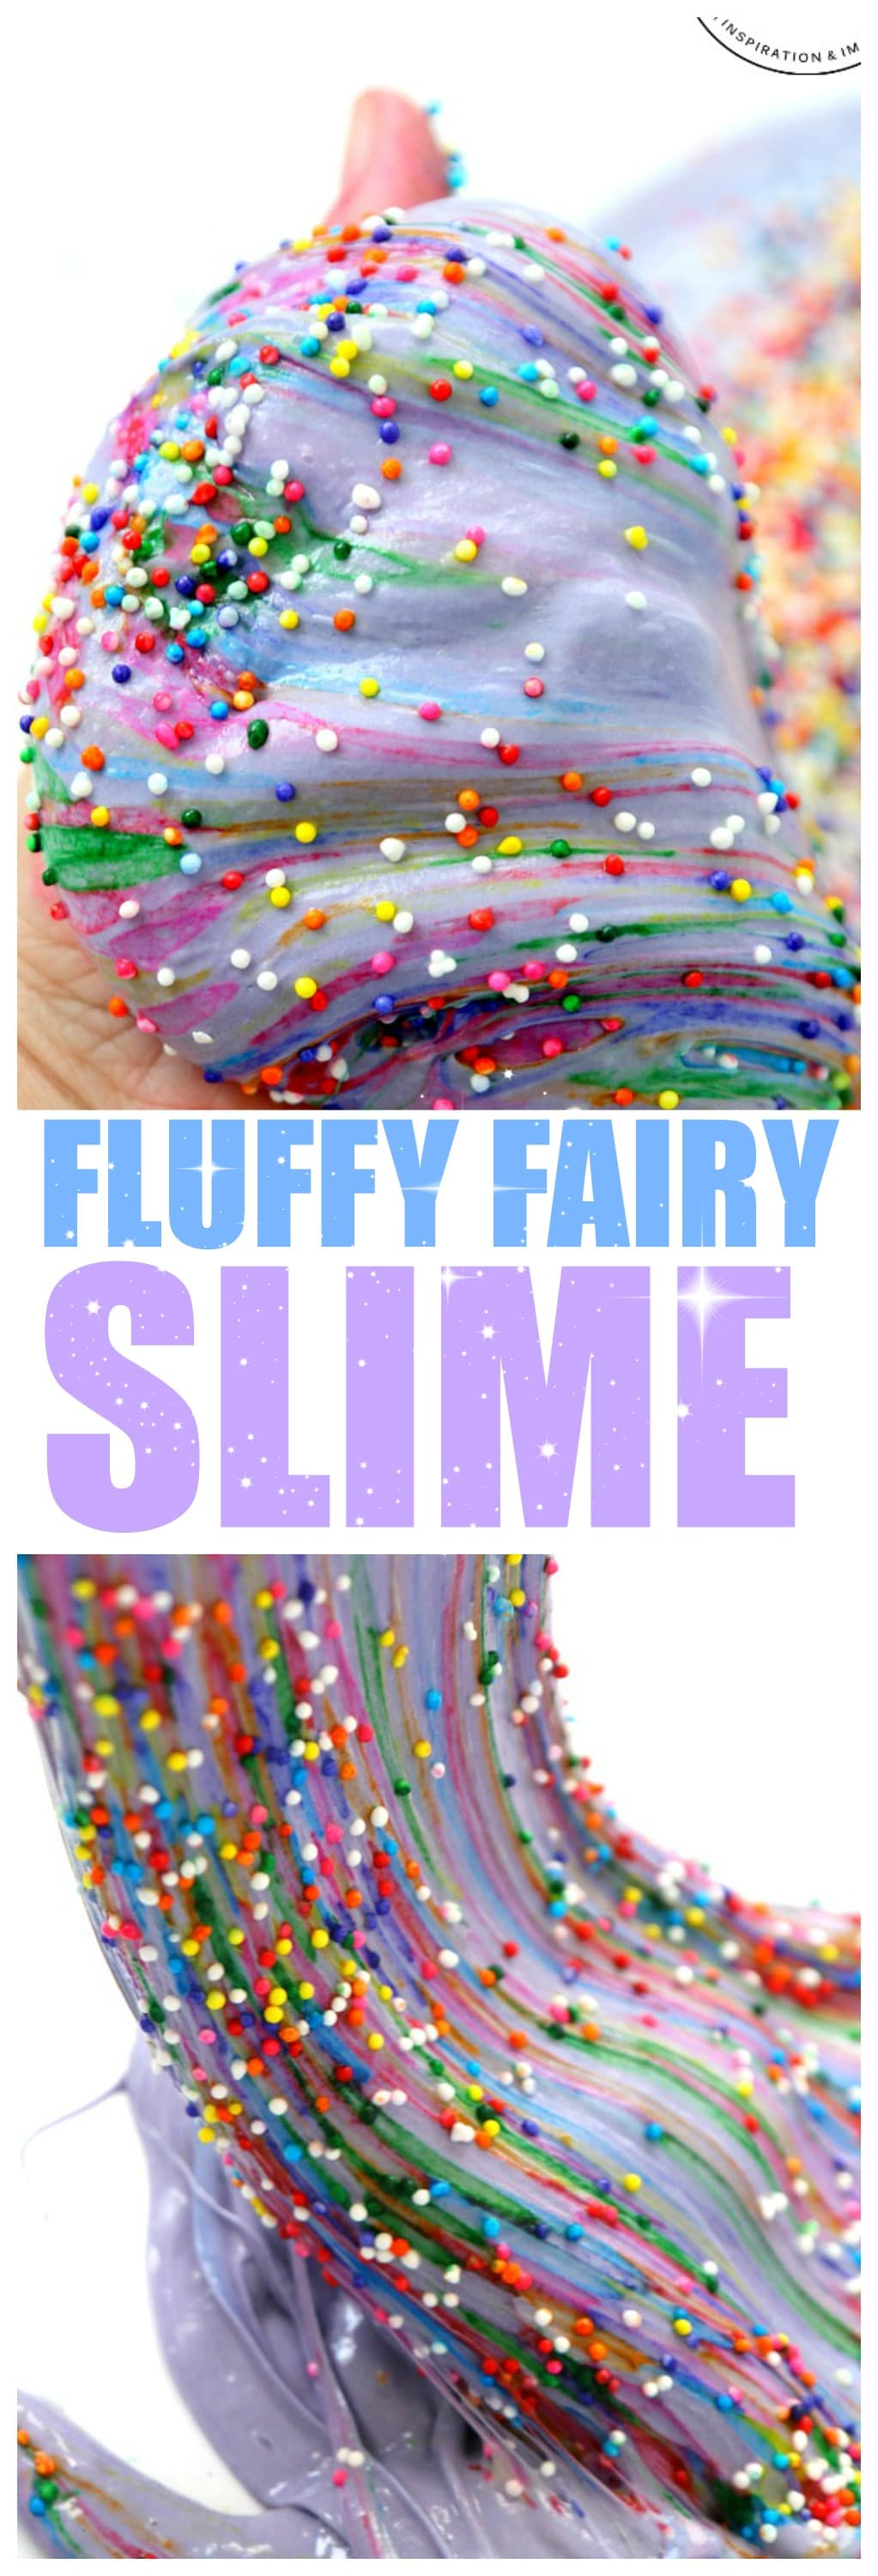 Fairy Slime: how to make fluffy fairy slime and magically appearing rainbows